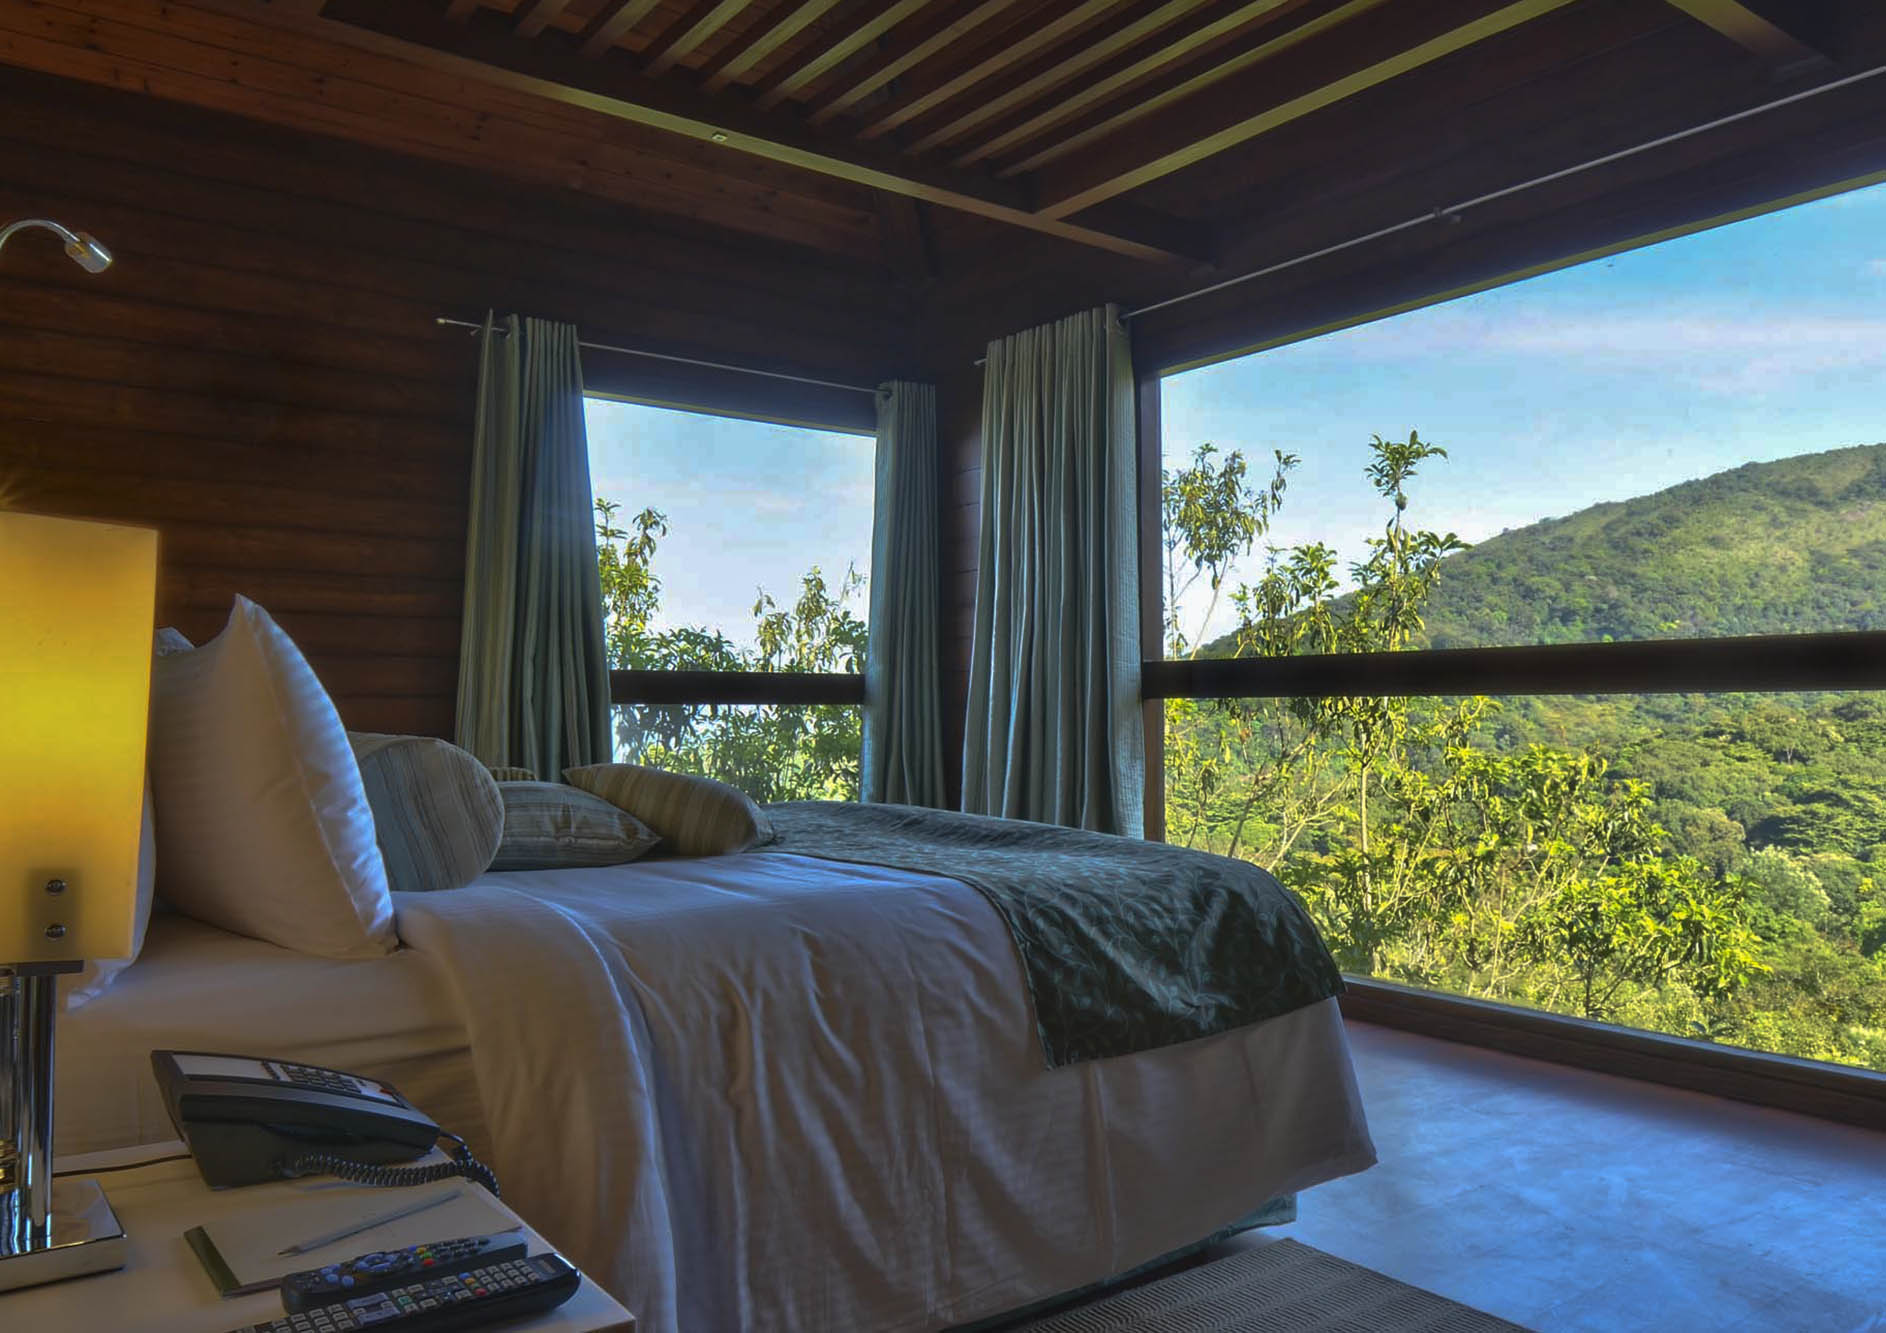 luxury-cottage-bed-with-nature-view